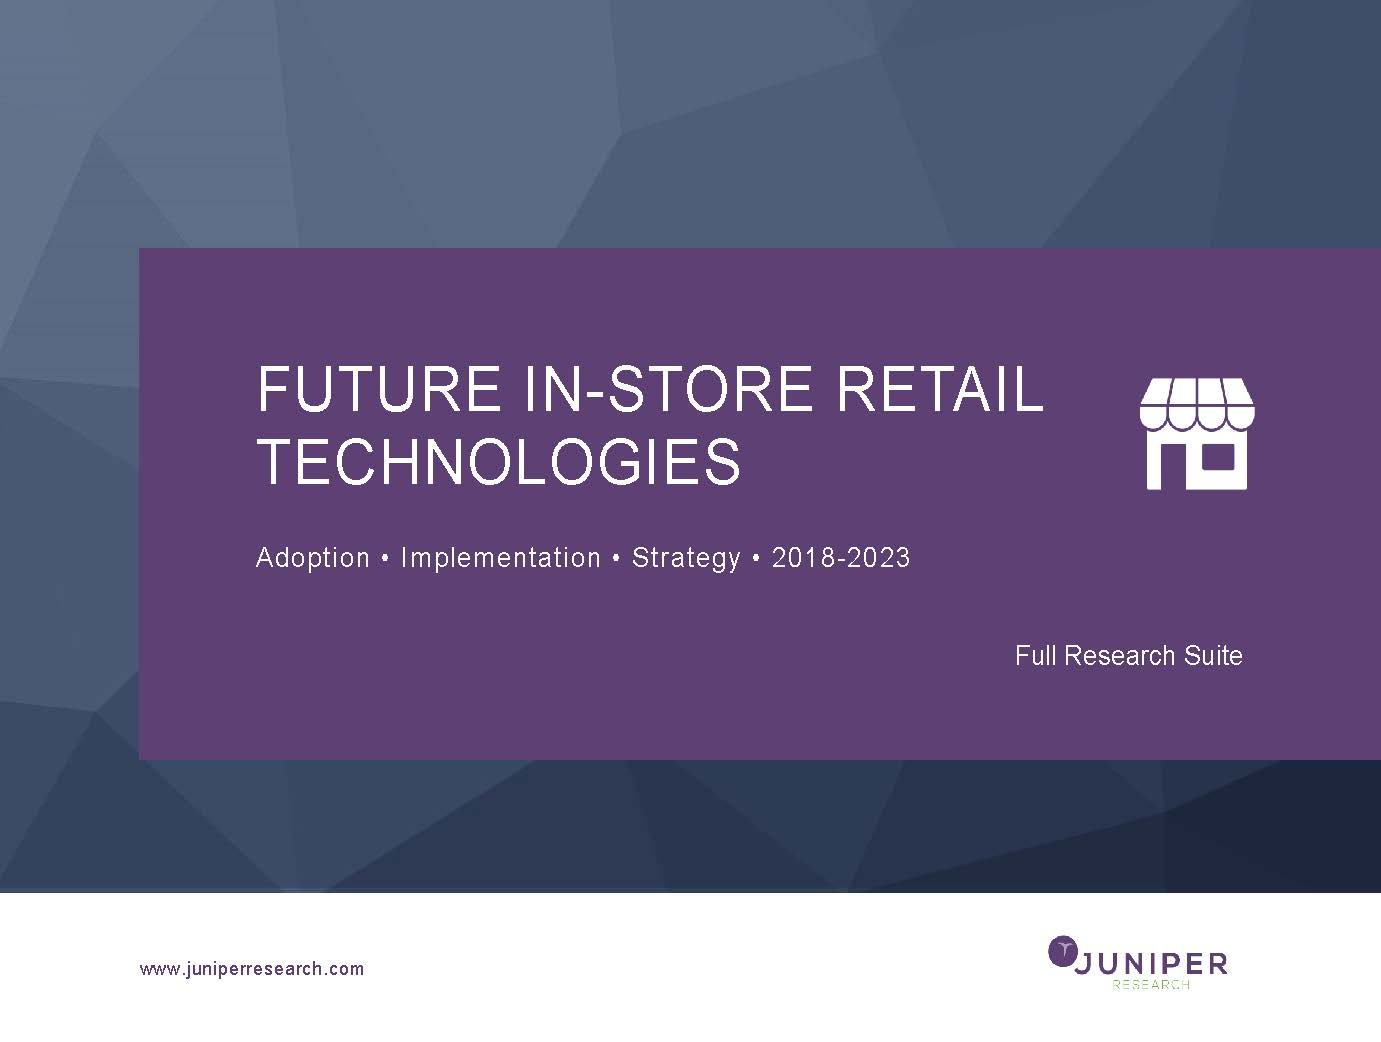 Future In-Store Retail Technologies: Adoption, Implementation & Strategy 2018-2023 Full Research Suite